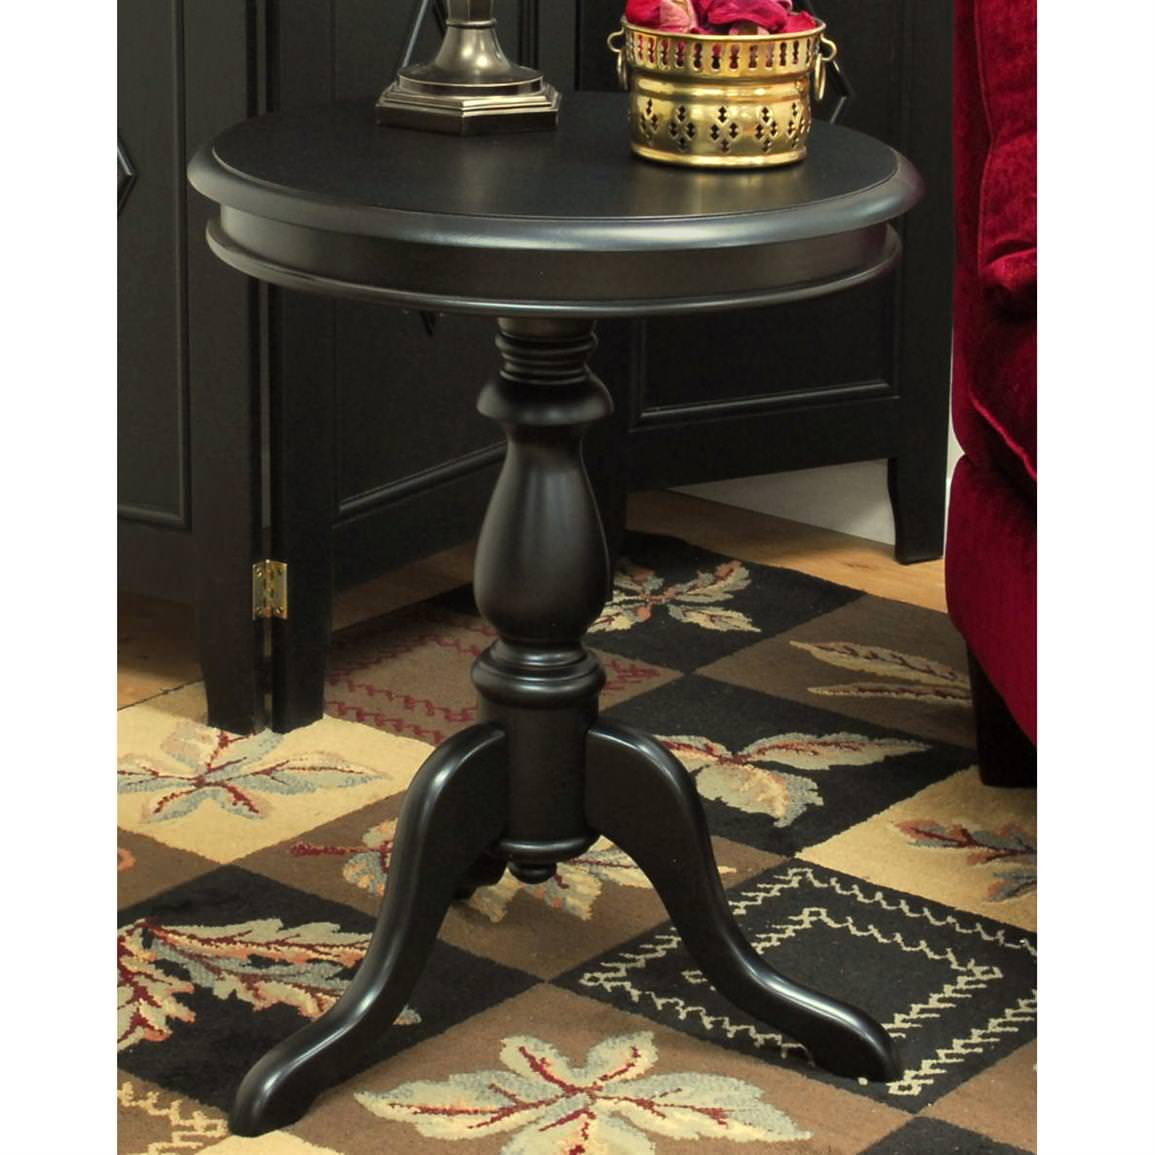 black pedestal accent table khandzoo home decor build dining room unique furniture square patio covers decorative accents for living circular legs small garden wood end barnwood